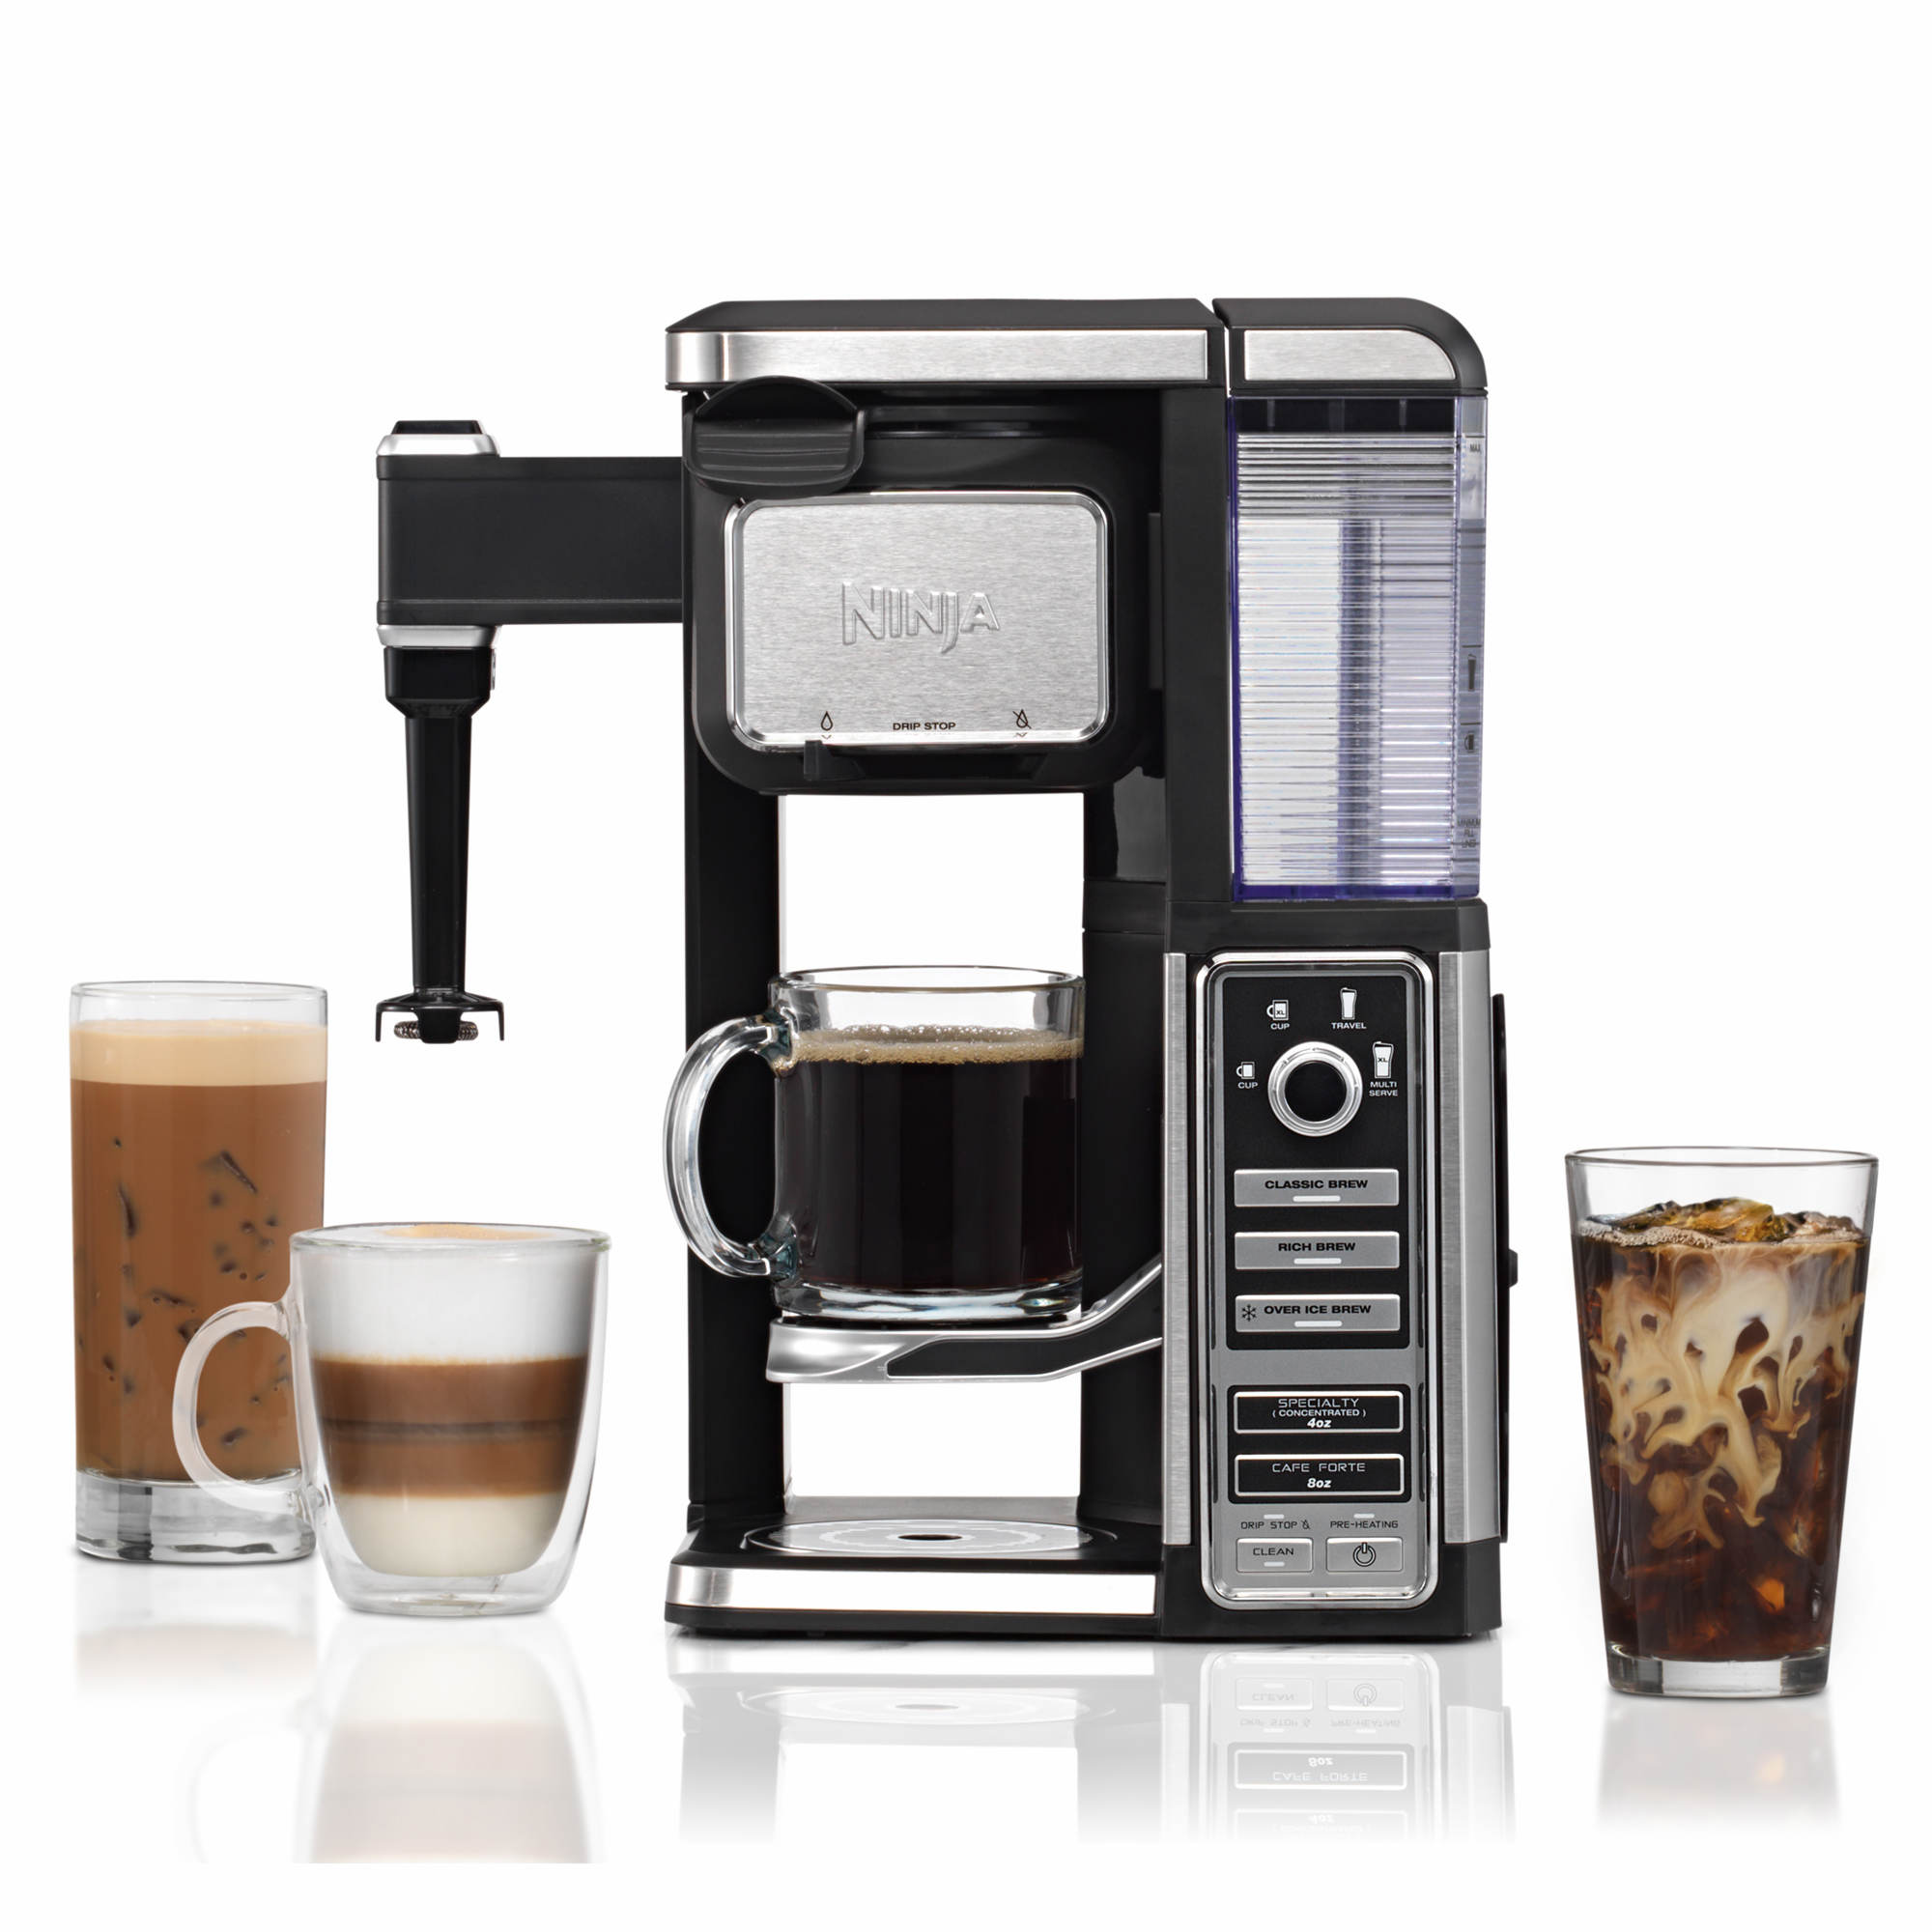 Ninja Coffee Maker Instructions : Ninja Coffee Bar Single-Serve System - BJ s Wholesale Club